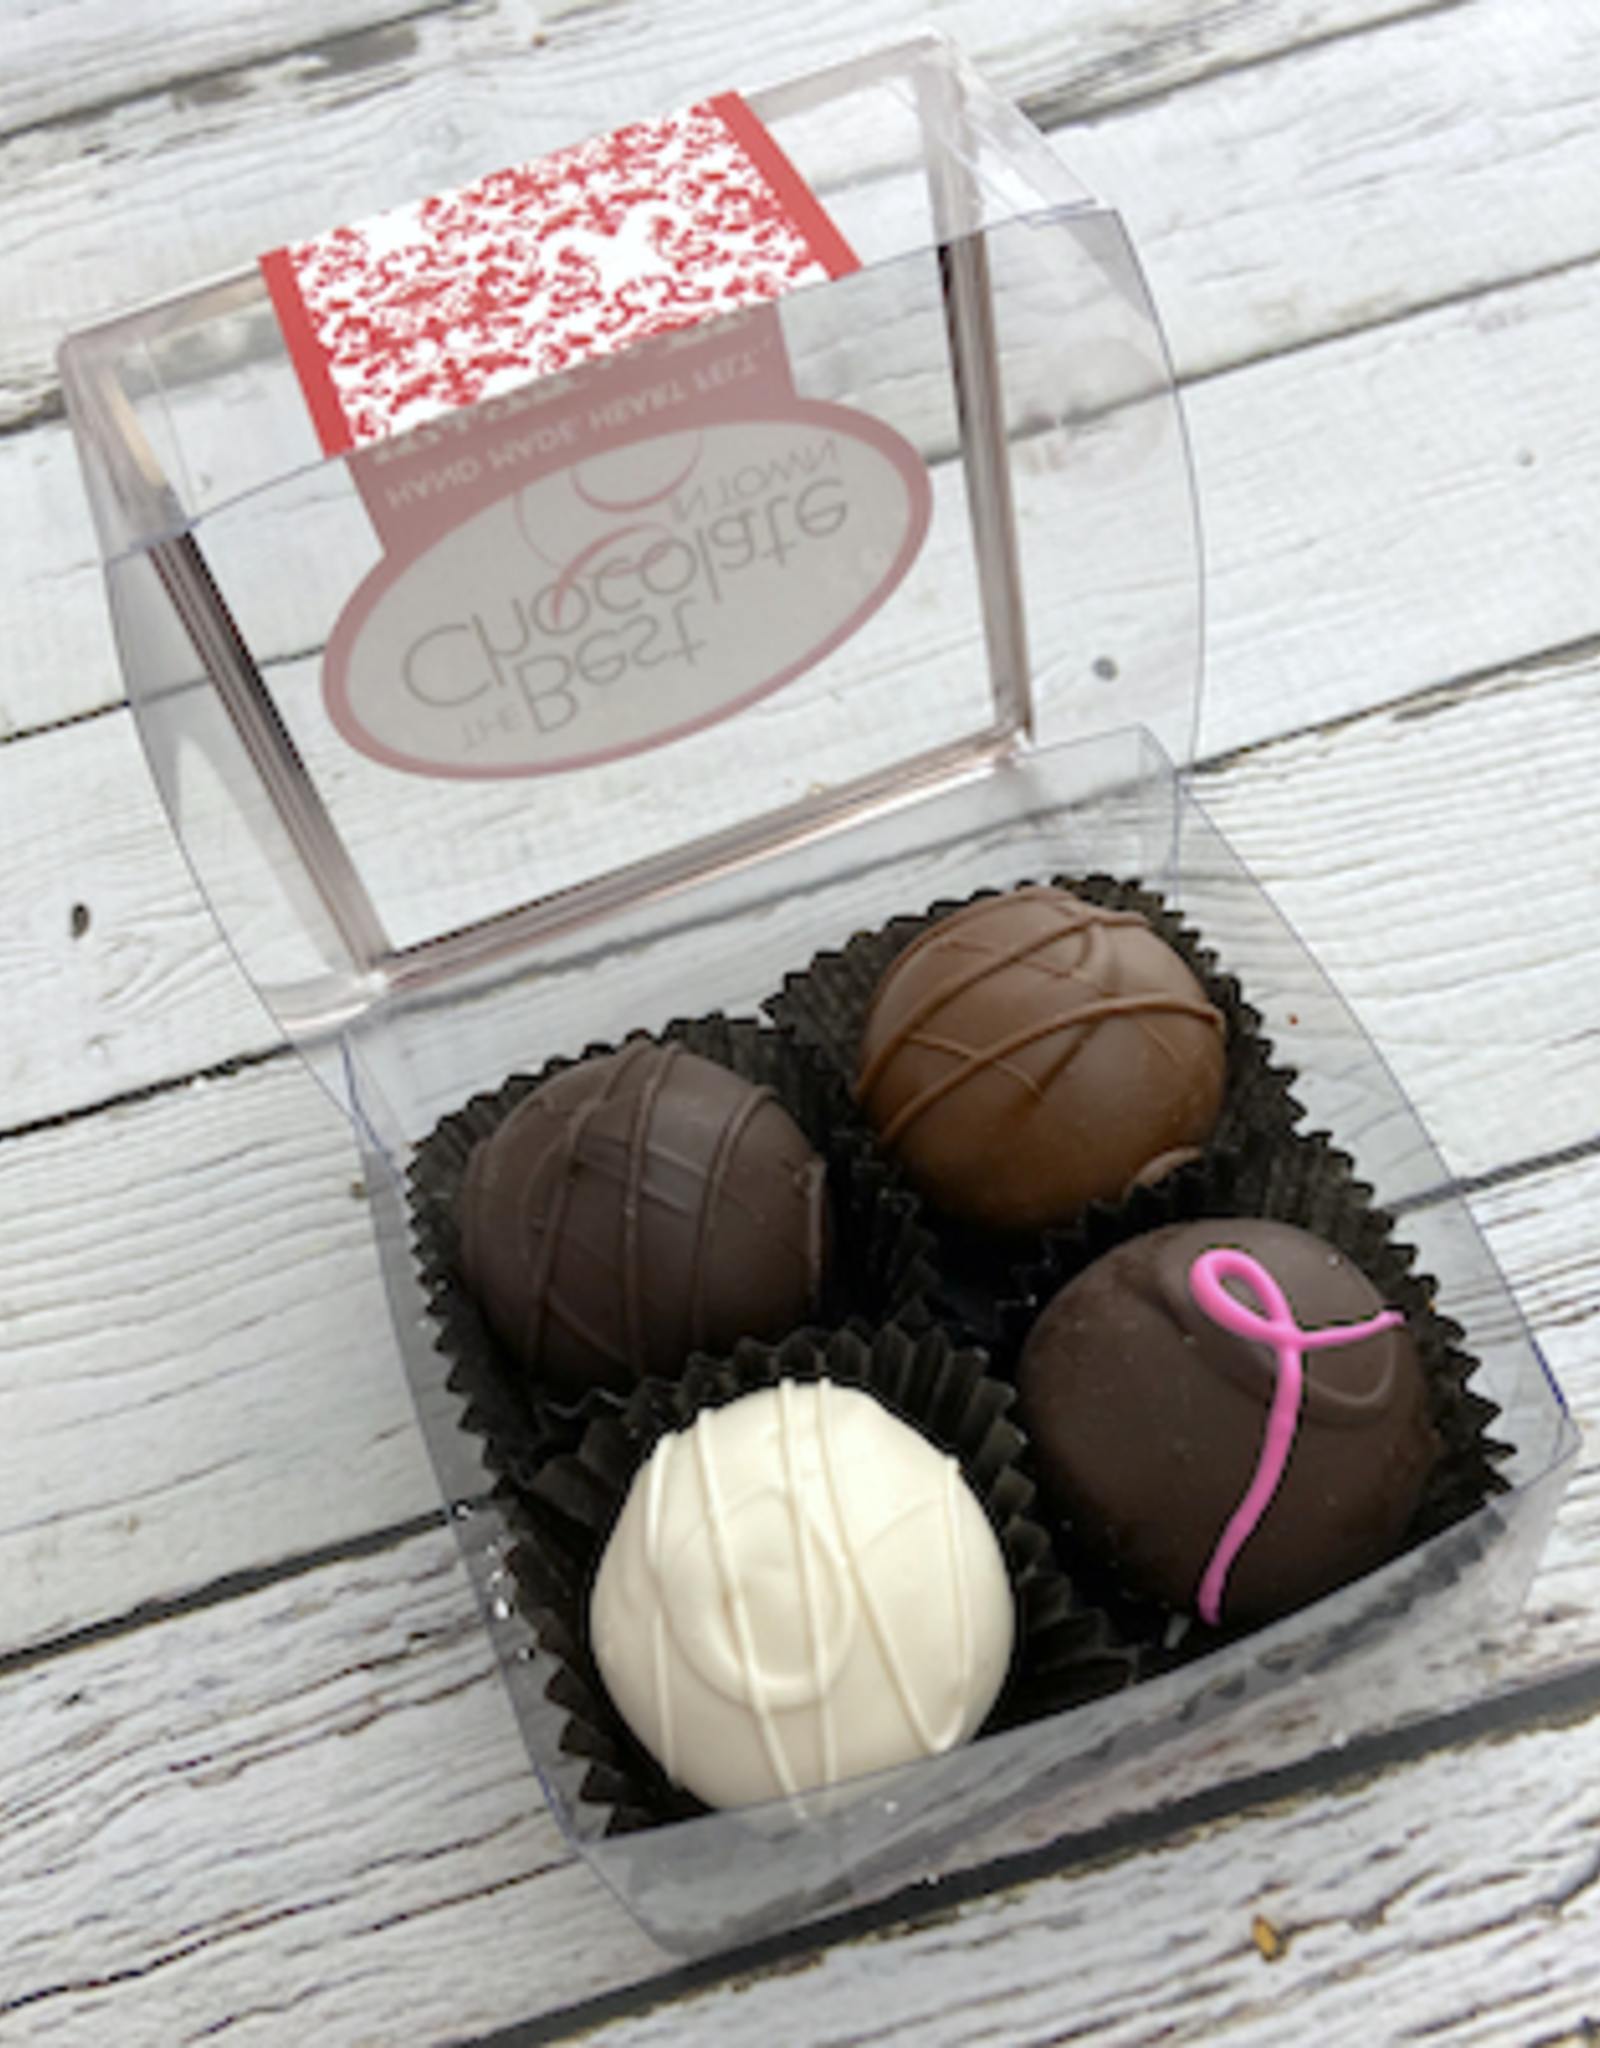 BESTCHOC 4-pc Chocolate Truffle Sampler from Best Chocolate in Town